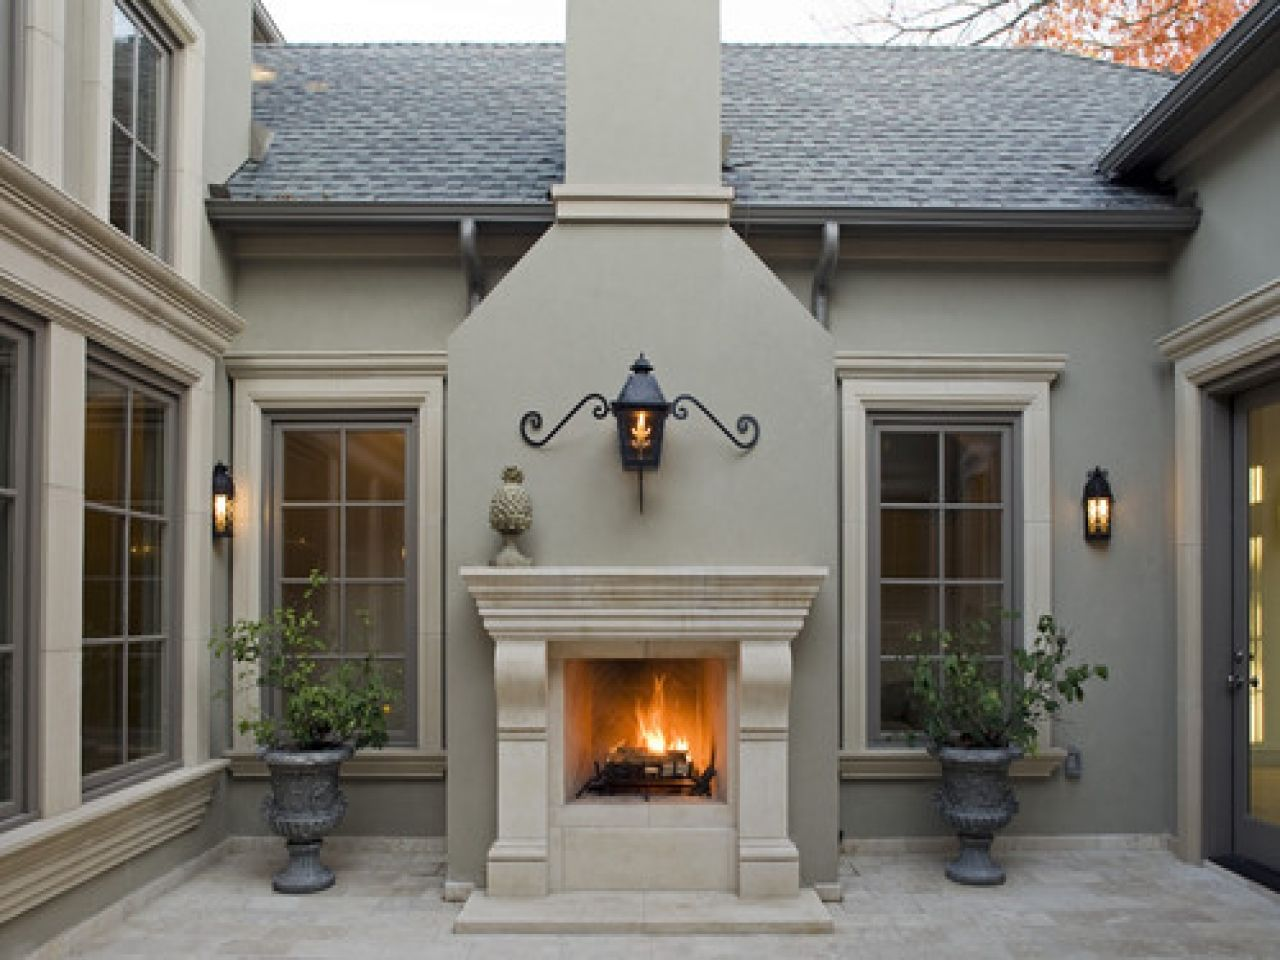 Stucco house paint colors. Light gray/taupe would look